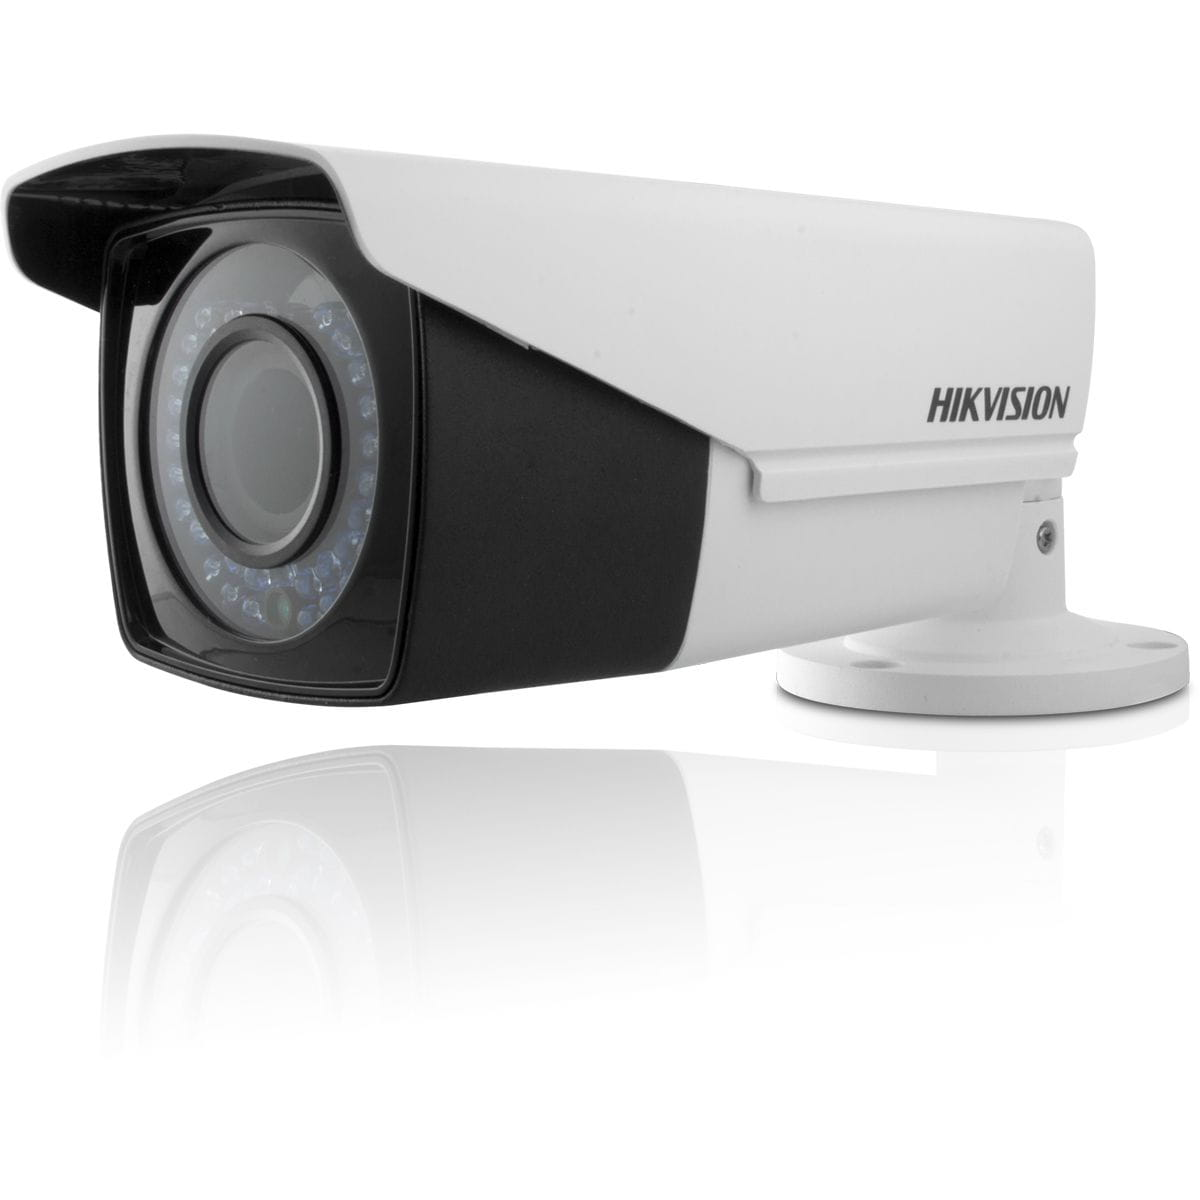 Câmera Bullet Turbo HD 720p 2MP 2.8-12mm NAC-DS-2CE16C2T-VFIR3 Hikvision